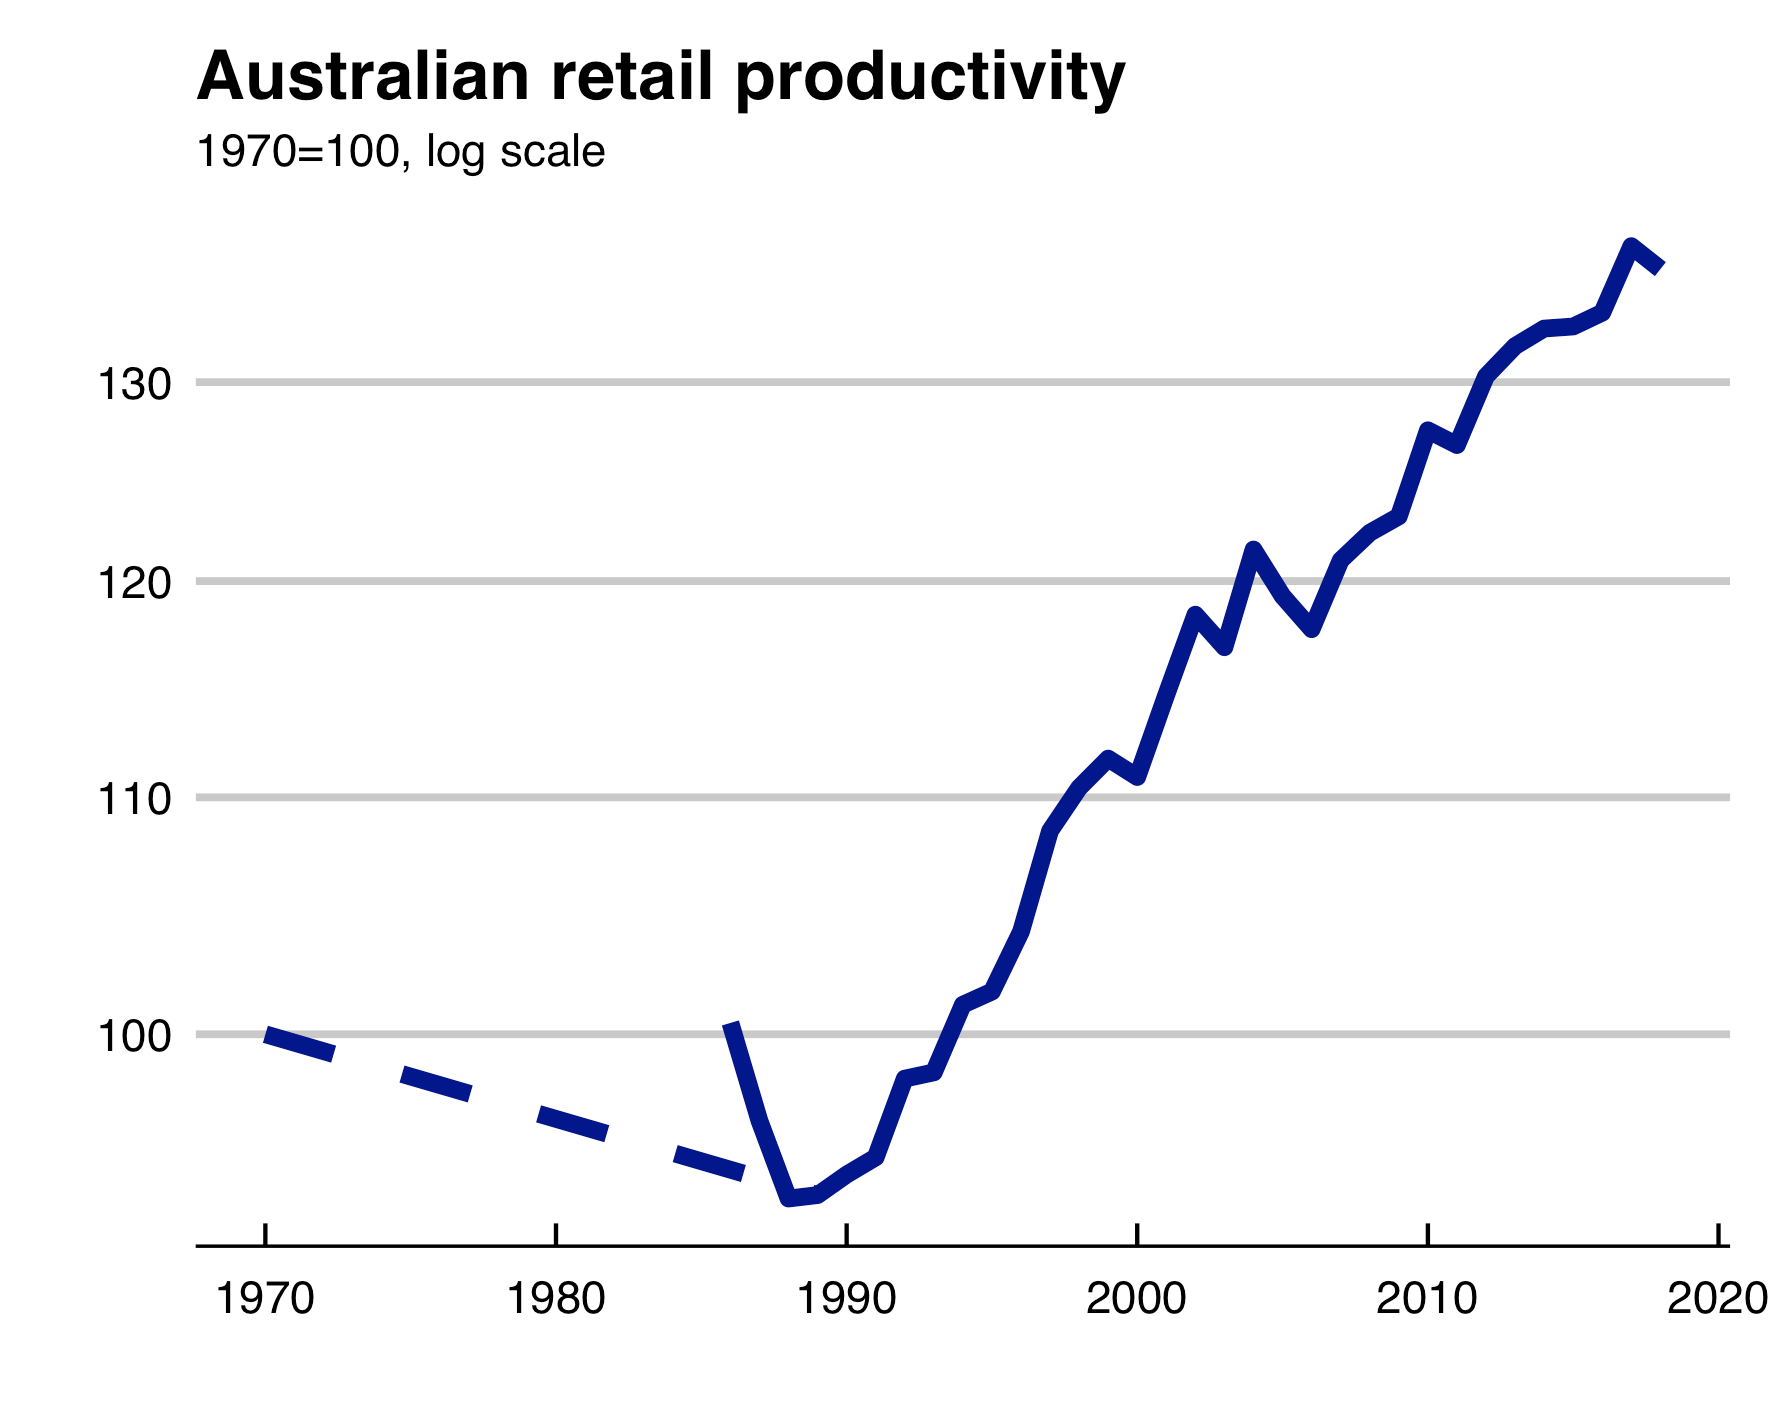 The level of Australian retail productivity